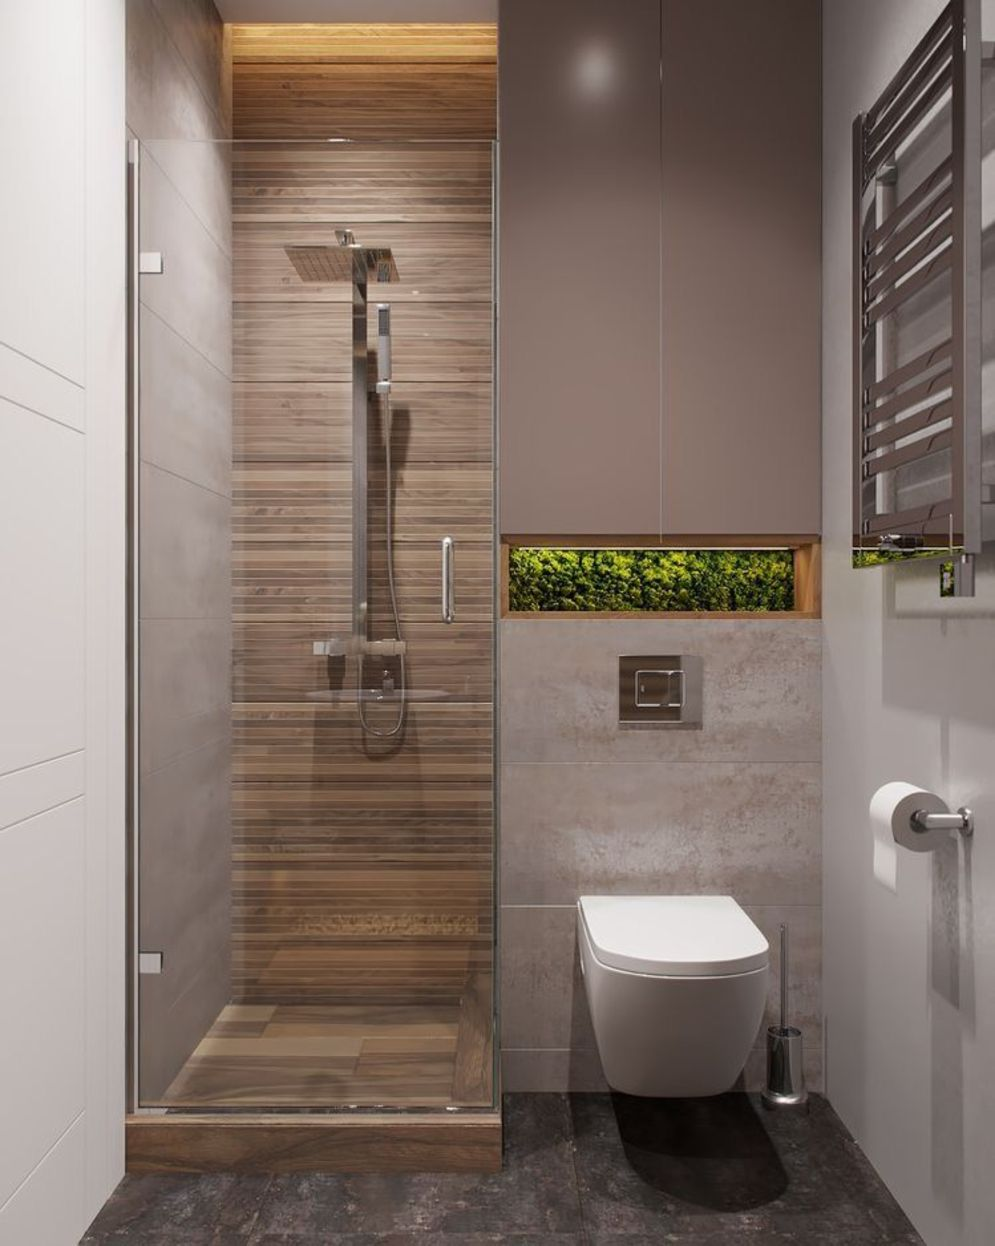 Timeless bathroom designs with wood accents enhancing more natural vibes Image 32